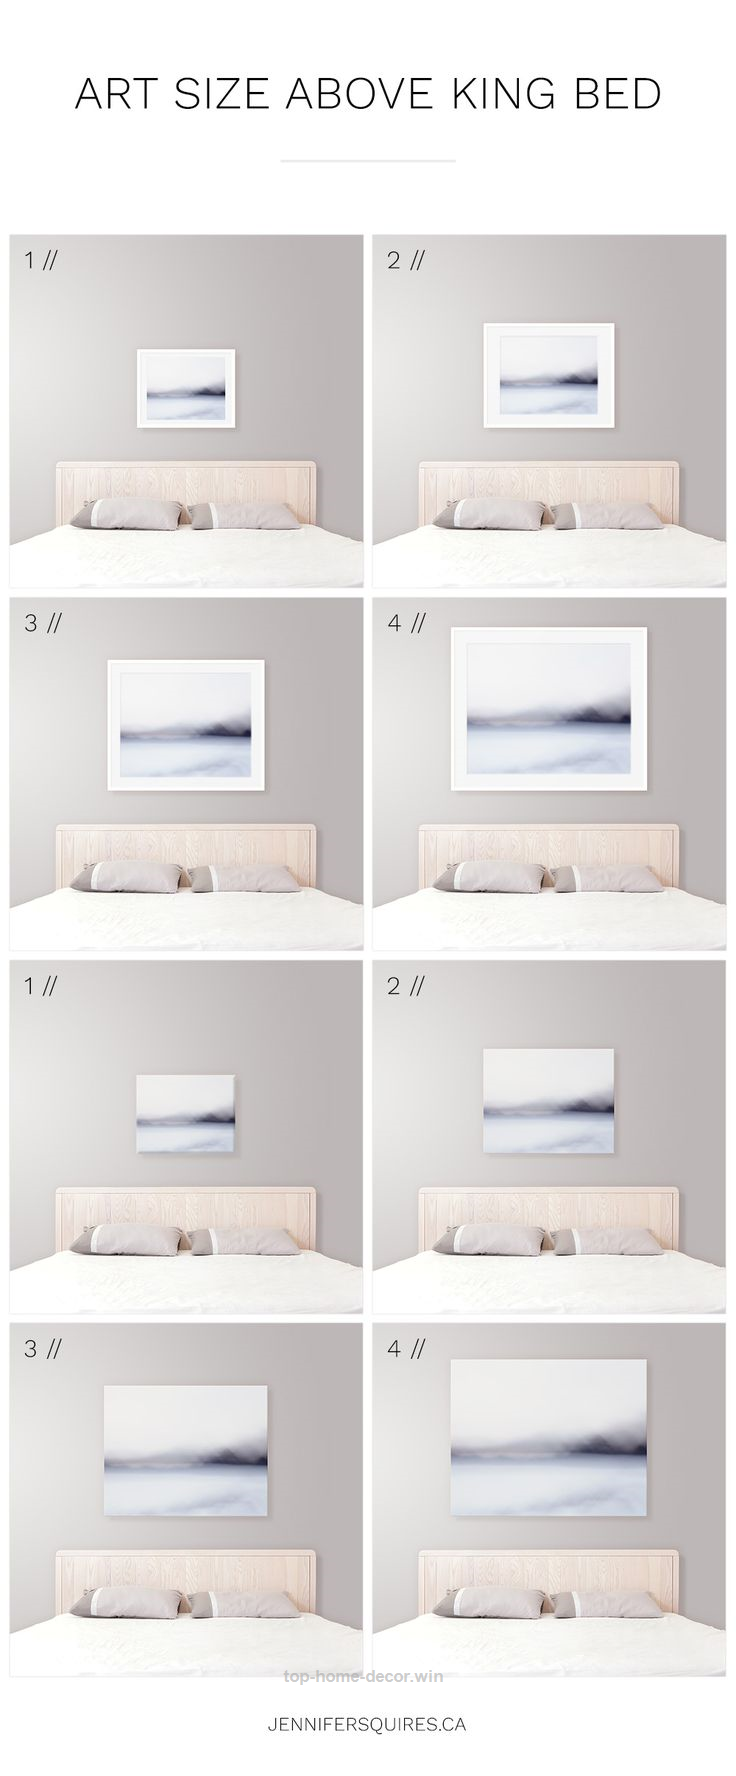 Top Home Decor Win Bedroom Wall Decor Above Bed Coastal Bedroom Decorating Above Bed Decor